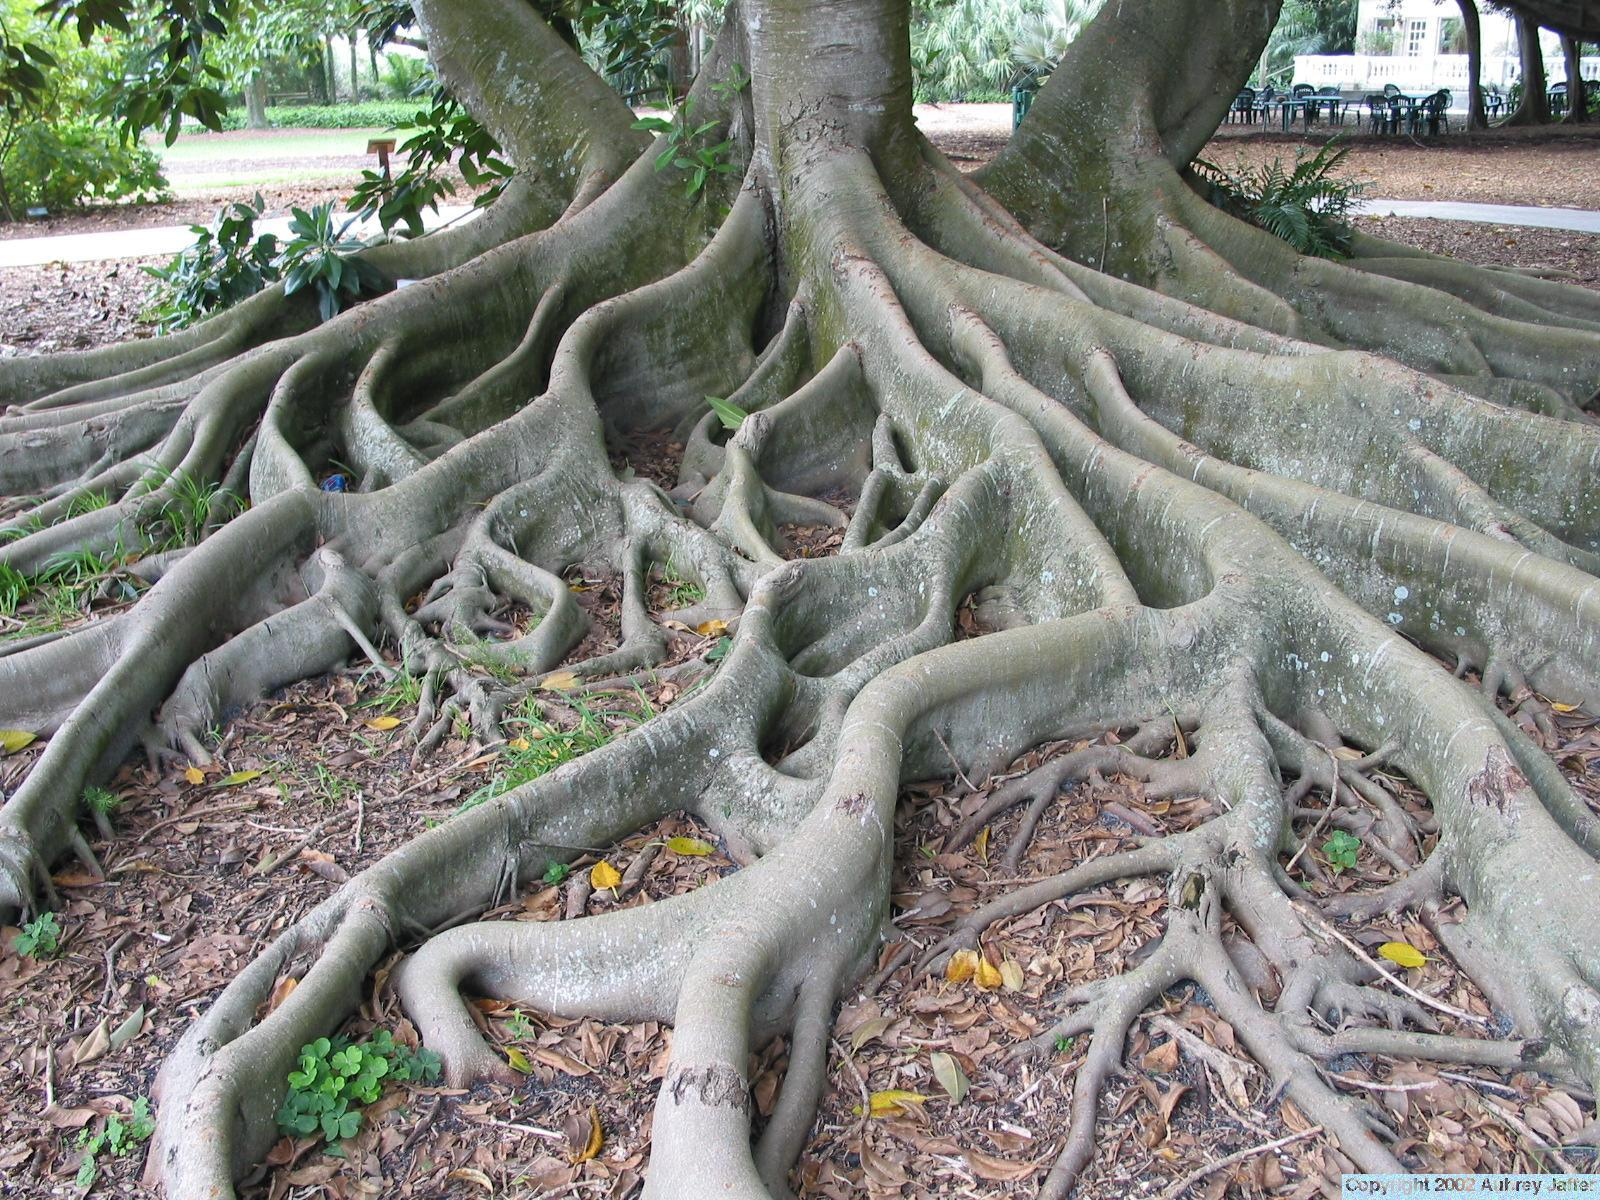 This is a big tree with lots of roots scattered all over the ground.